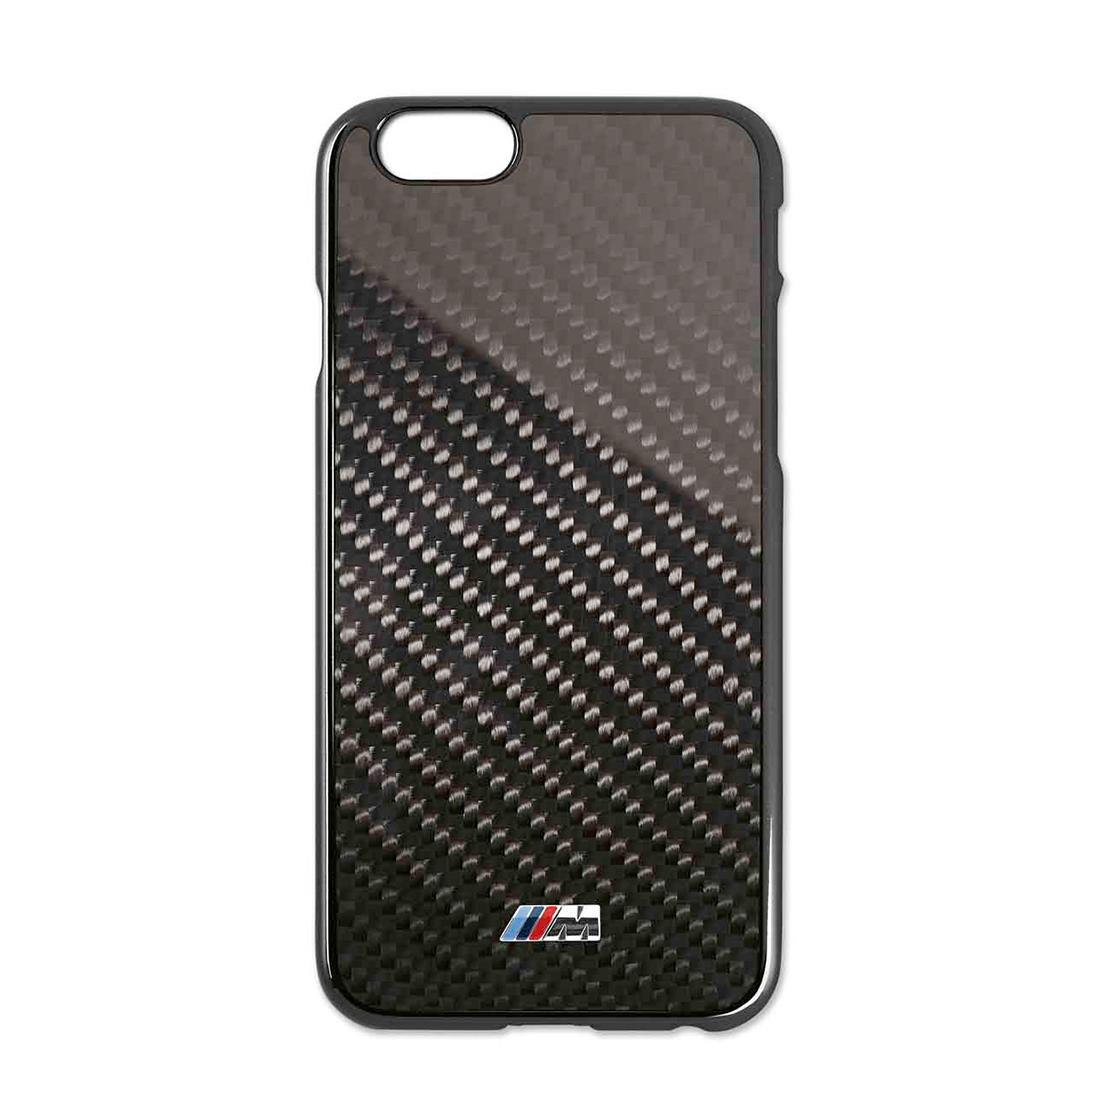 lowest price 0bd57 a7add ShopBMWUSA.com: BMW M HARD CASE CARBON IPHONE 7/8